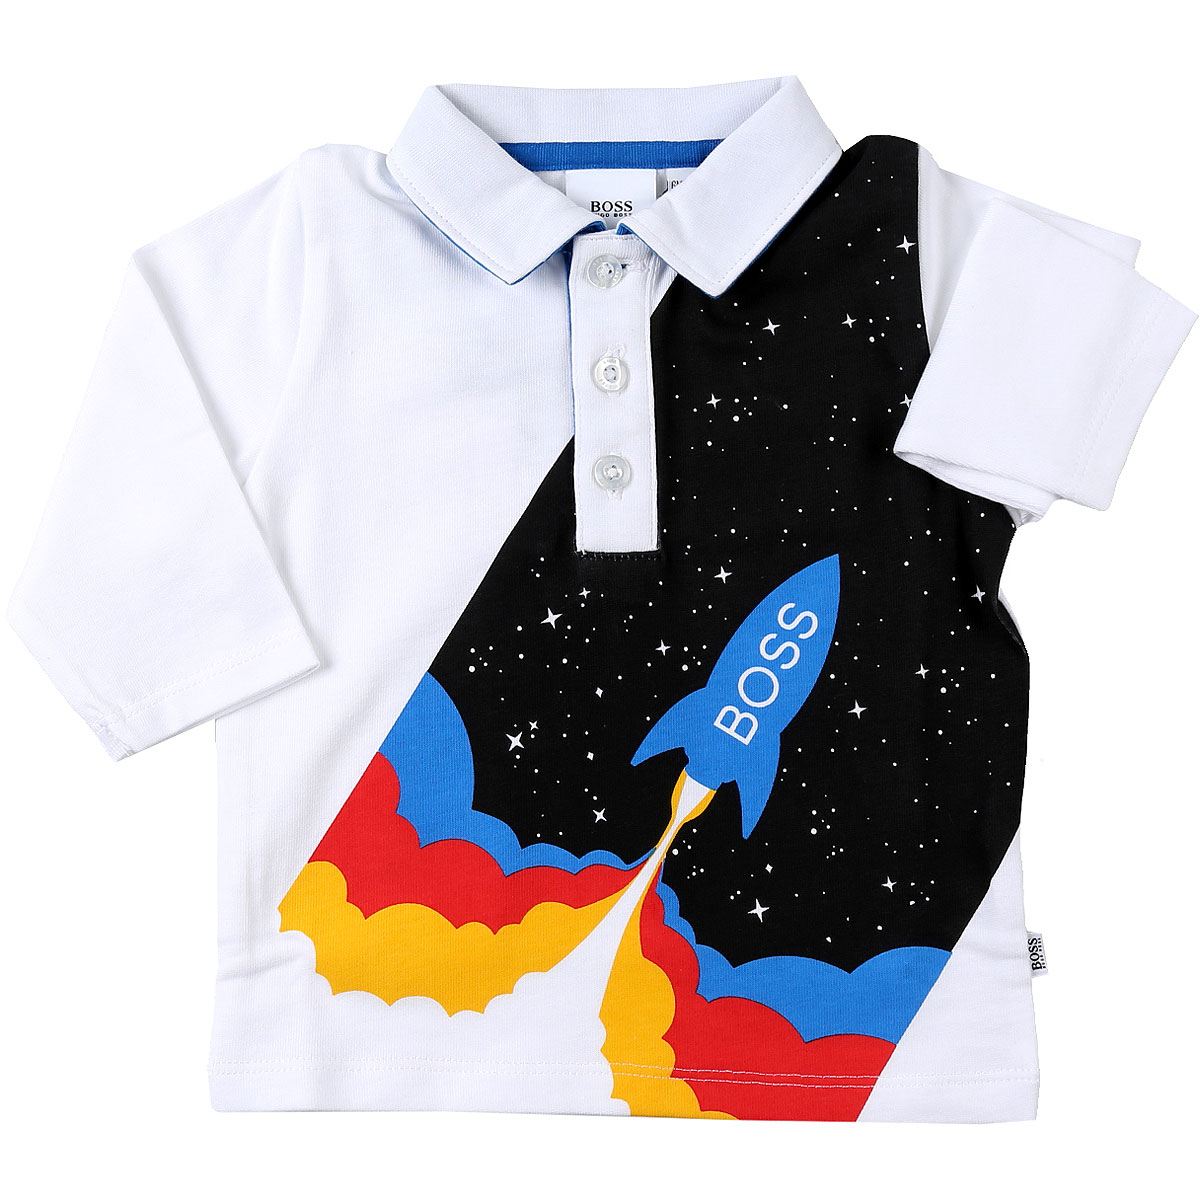 Hugo Boss Baby Polo Shirt for Boys On Sale, White, Cotton, 2019, 12 M 18M 2Y 3Y 6M 9M